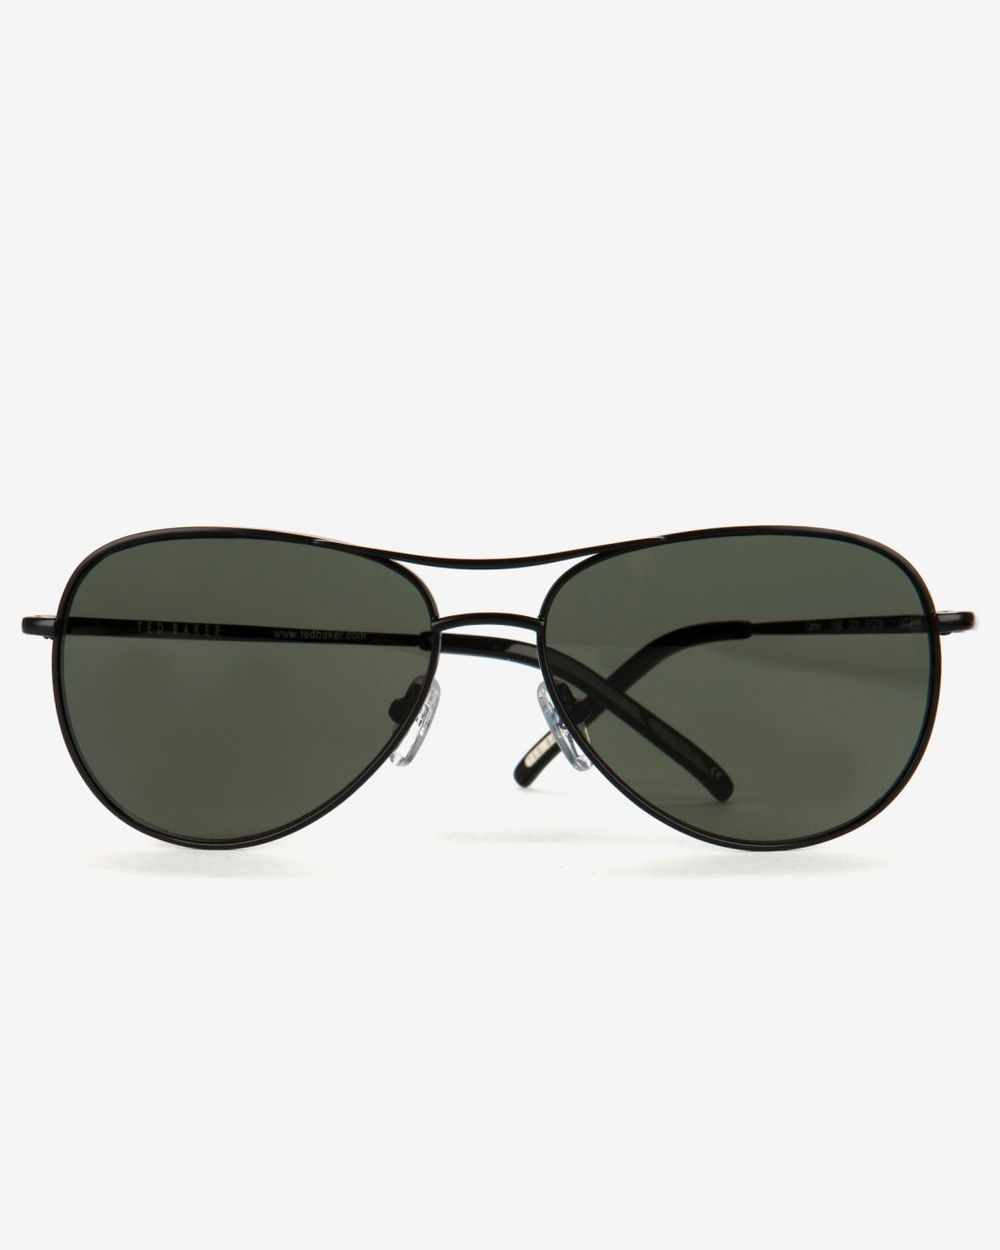 uk-mens-accessories-sunglasses-carter-aviator-sunglasses-black-xs5w_carter_00-black_1.jpg